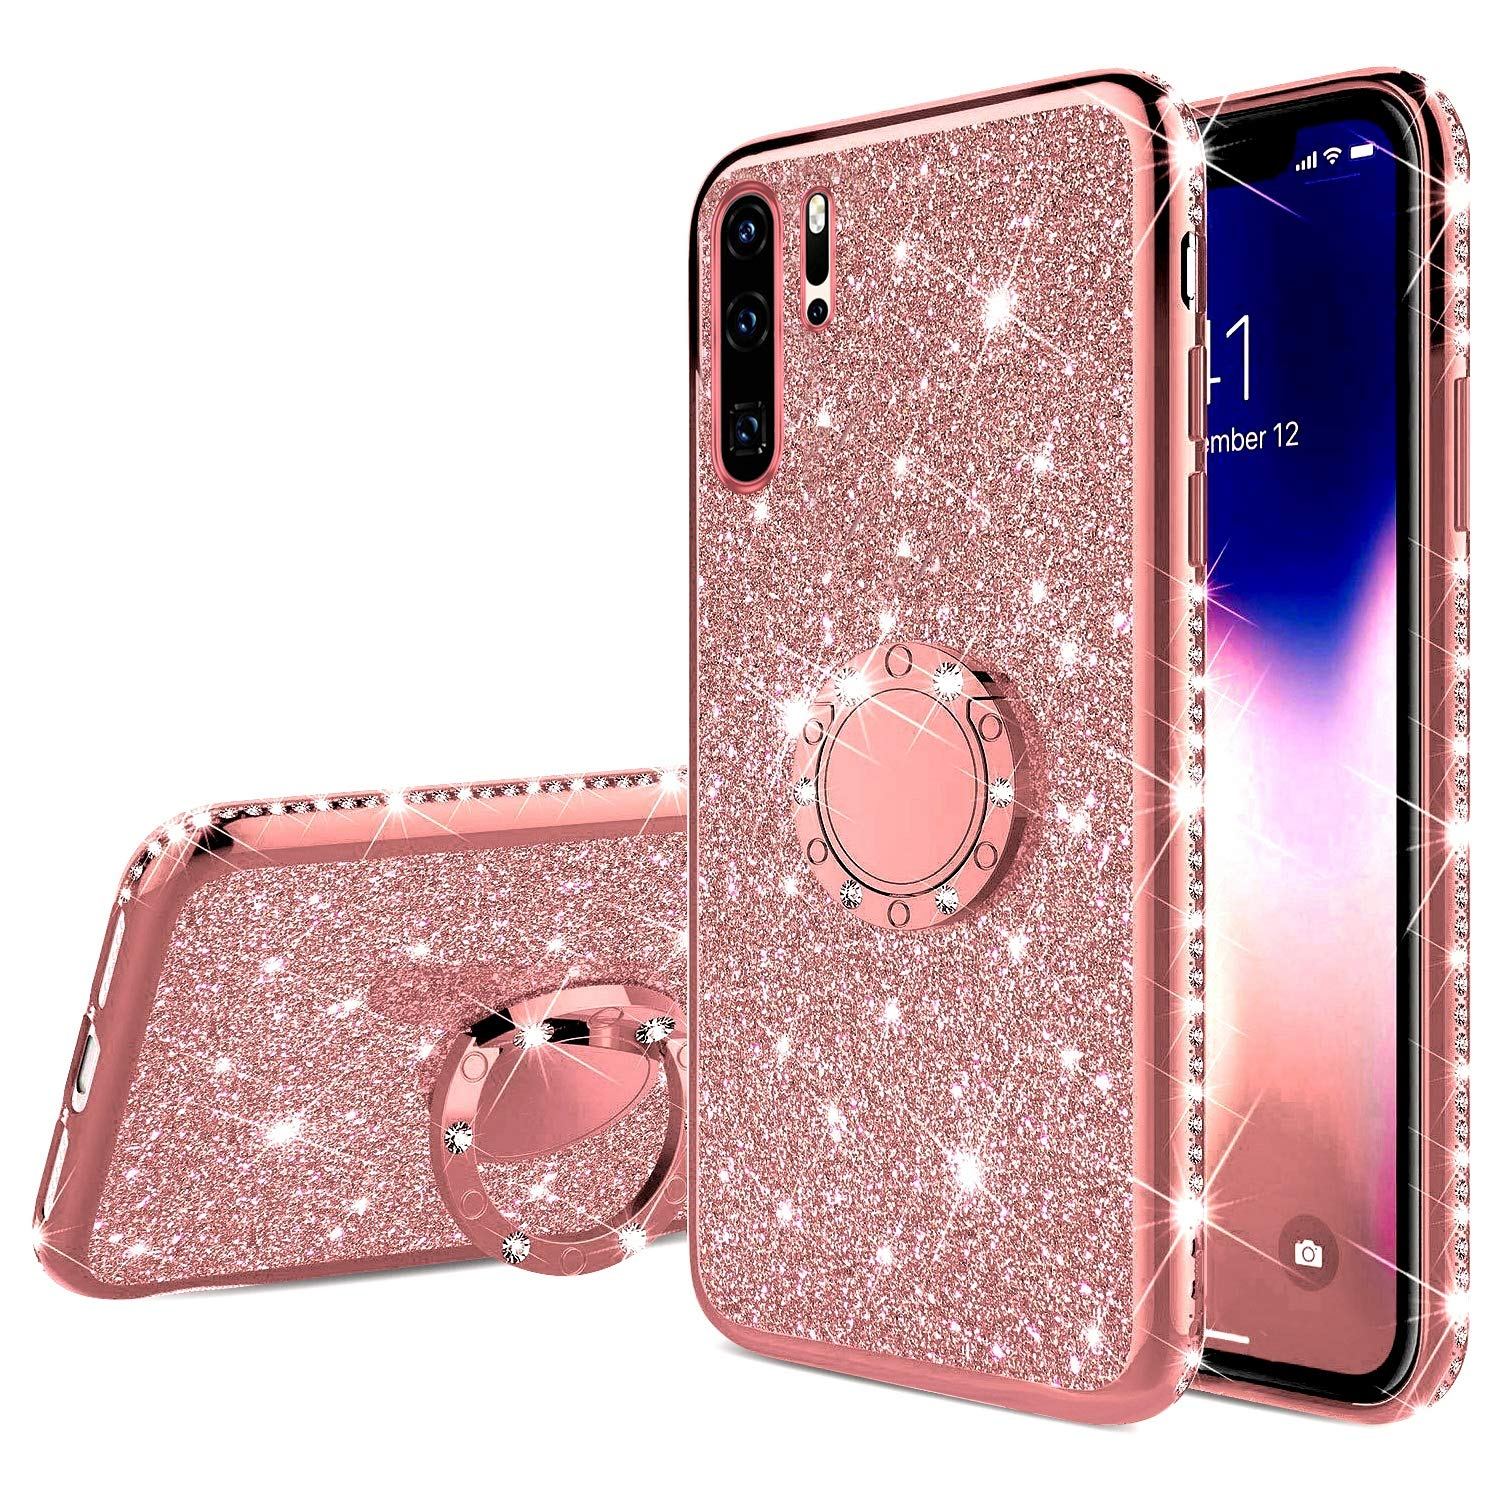 Finger Ring Diamond Soft <font><b>Case</b></font> for <font><b>HUAWEI</b></font> P20 P30 Lite <font><b>Pro</b></font> P Smart 2019 Z P10 Nova 3 3i HONOR 7X 8X Mate <font><b>20</b></font> 10 Glitter Cover image